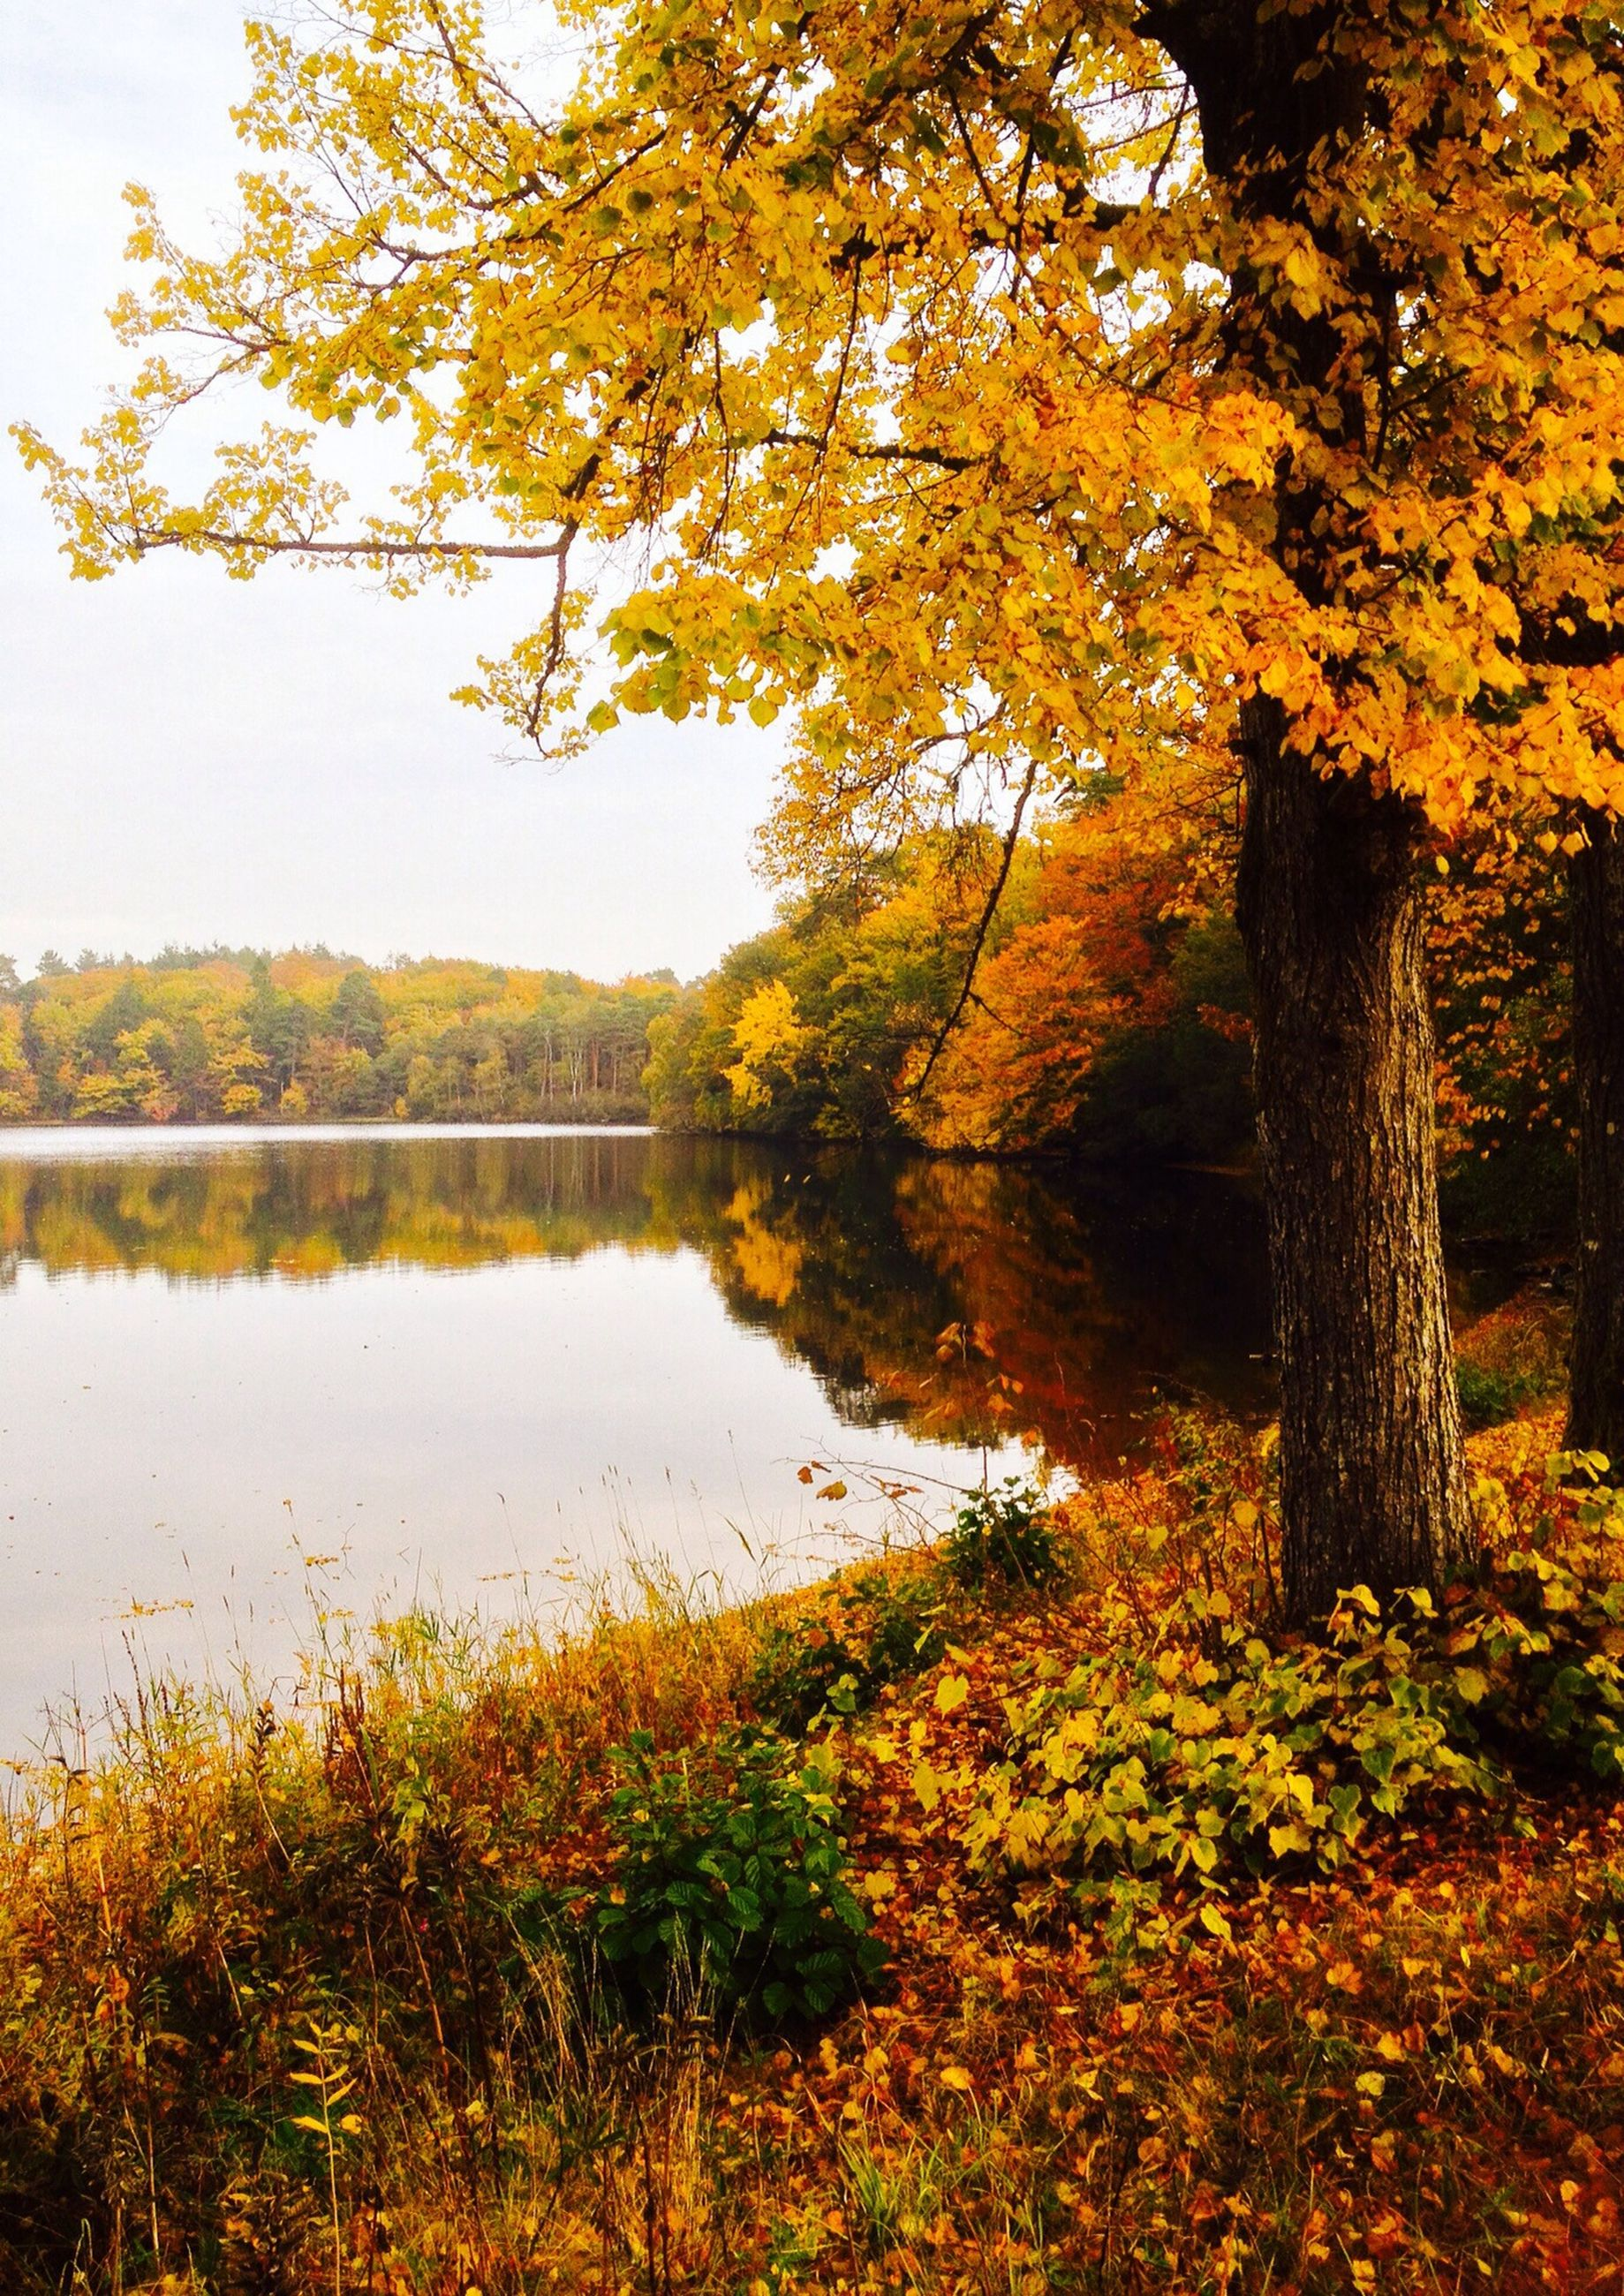 tree, water, tranquility, tranquil scene, beauty in nature, reflection, lake, scenics, autumn, growth, nature, branch, river, change, idyllic, forest, sky, non-urban scene, outdoors, plant